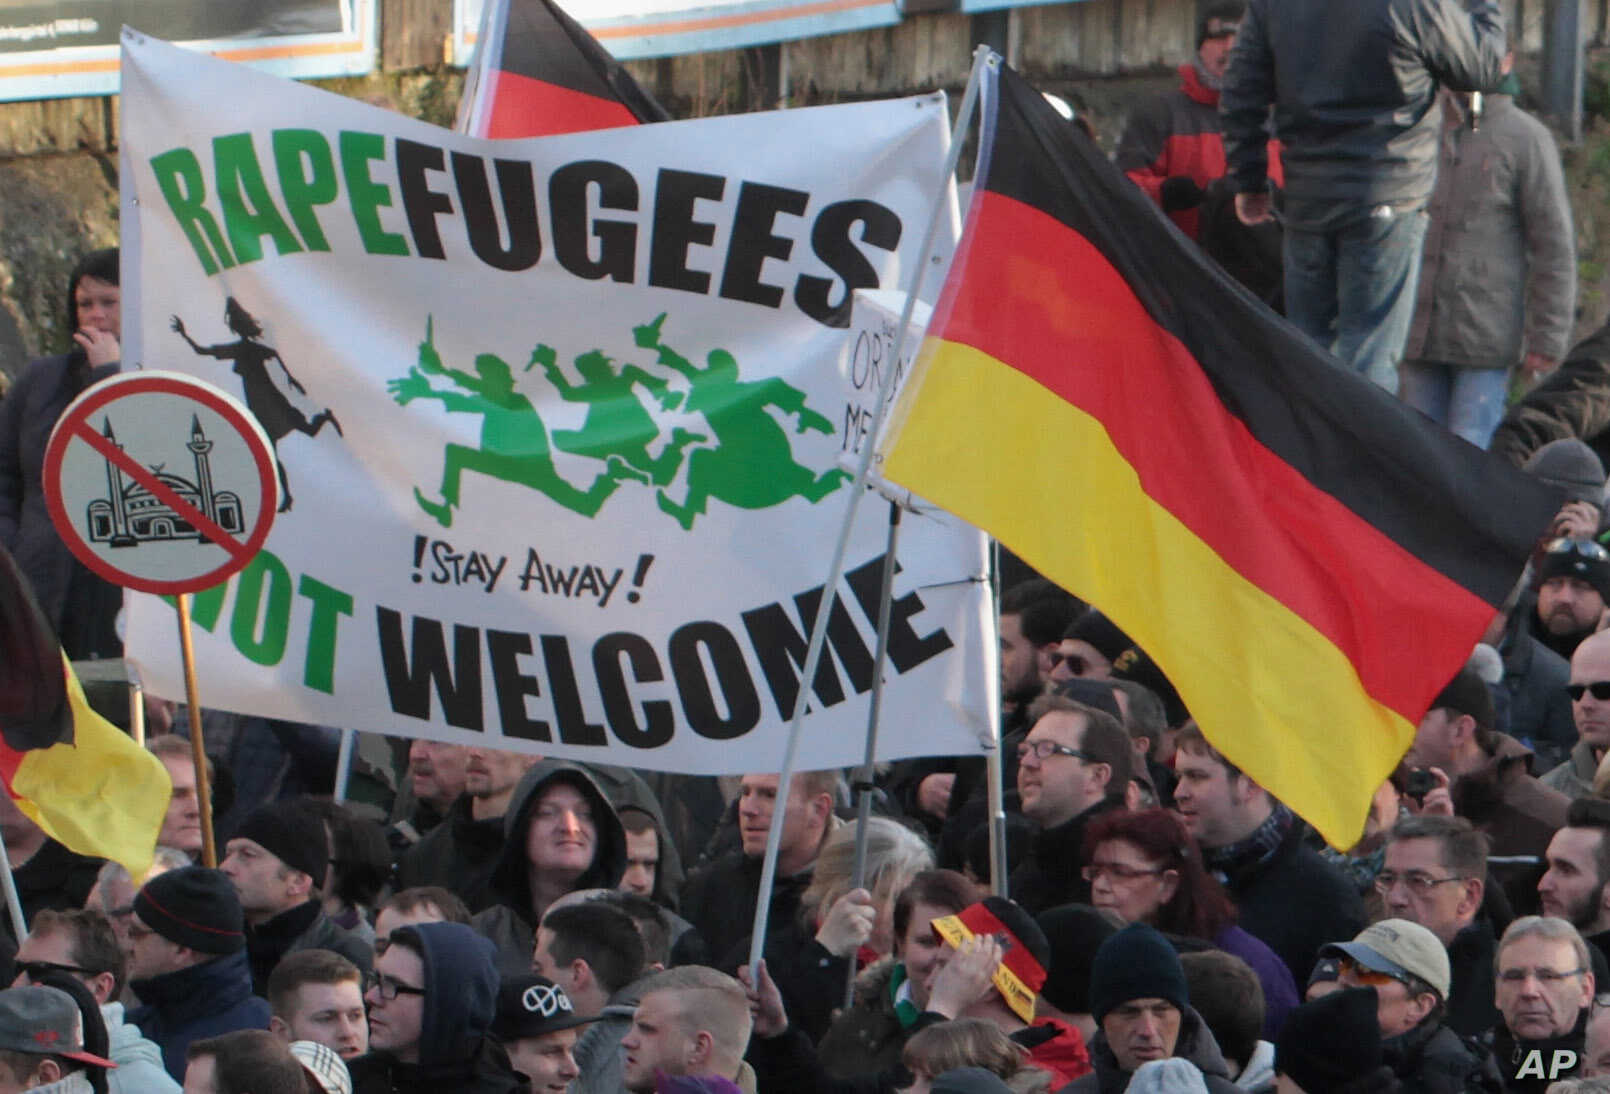 """Right-wing demonstrators hold a sign """"Rapefugees not welcome - !Stay away!"""" and a sign with a crossed out mosque as they march in Cologne, Germany Saturday Jan. 9, 2016. Women's rights activists, far-right demonstrators and left-wing counter-protes..."""